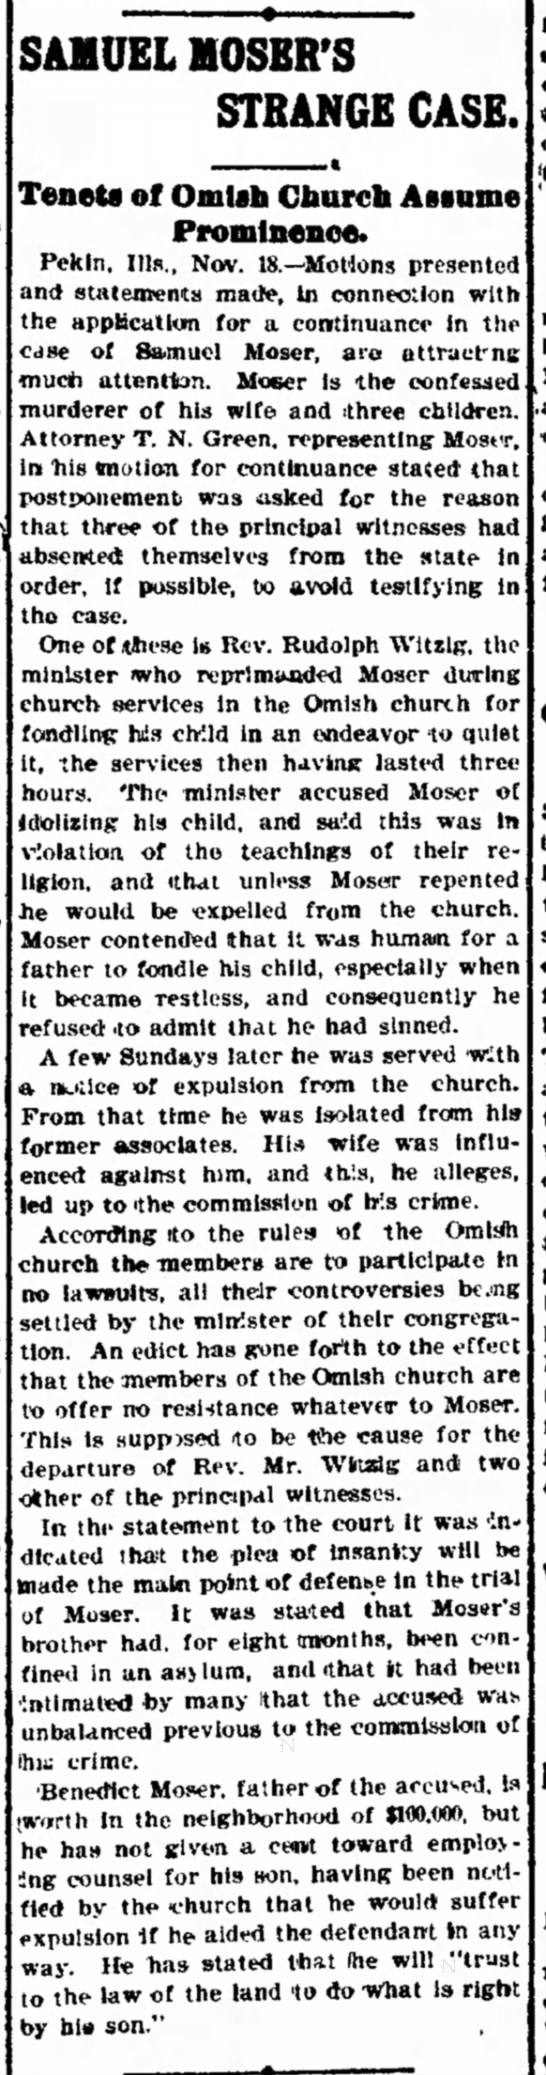 Decatur Illinois Moser case 11.19.1900